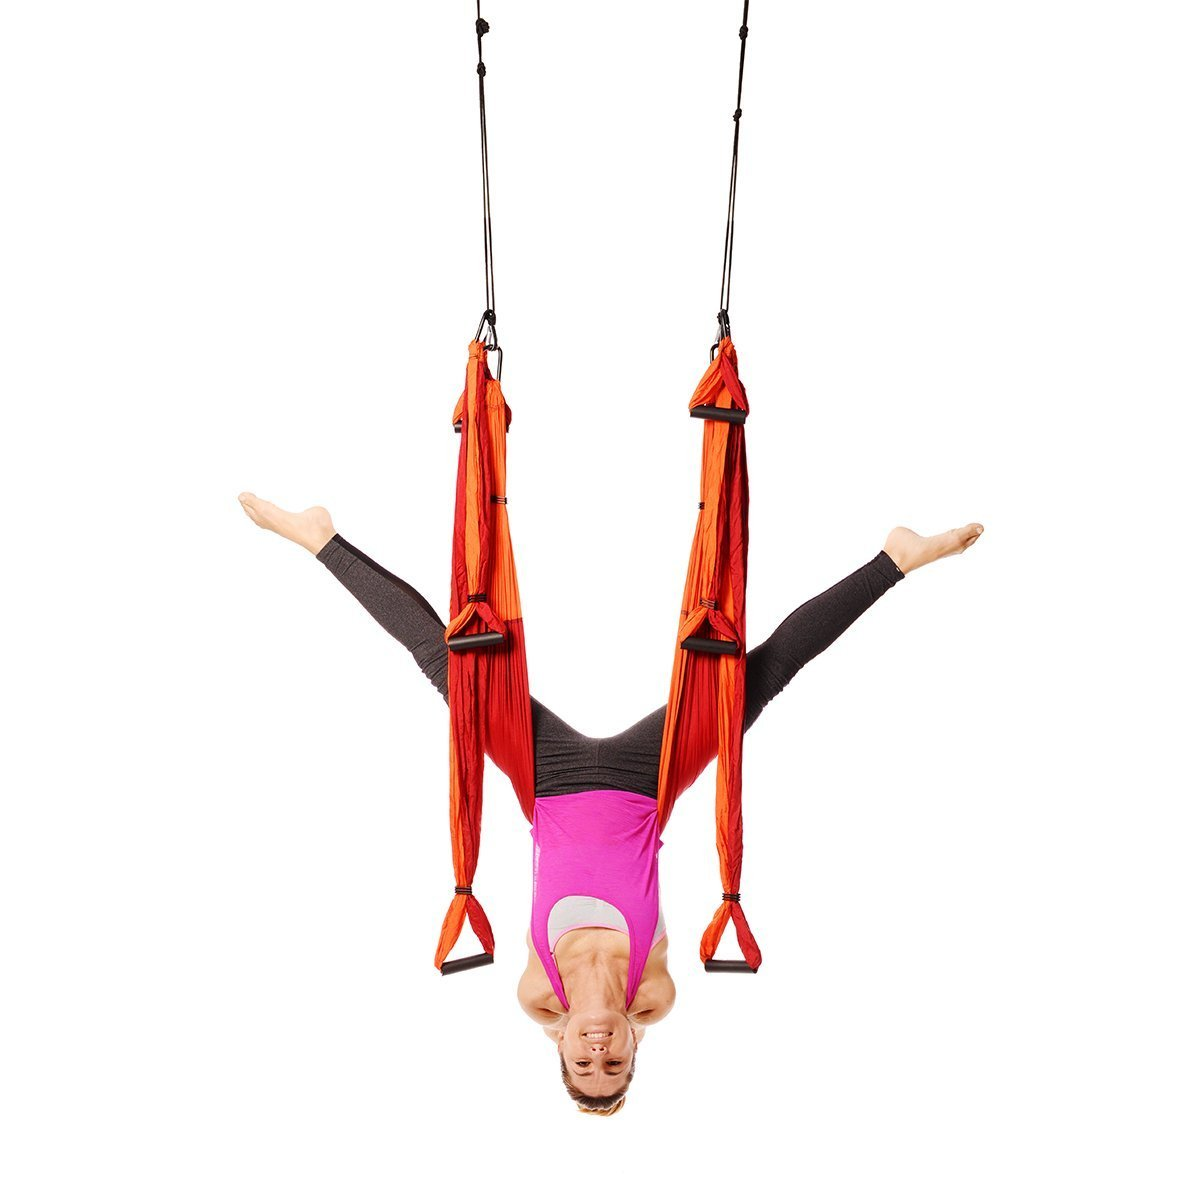 Ranbo Yoga Inversion Swing - Anti-Gravity Aerial Trapeze - Flying Hammock Sling - Relieves Back Pains, Improves your Strength, Balance, Flexibility and Endurance (Orange)